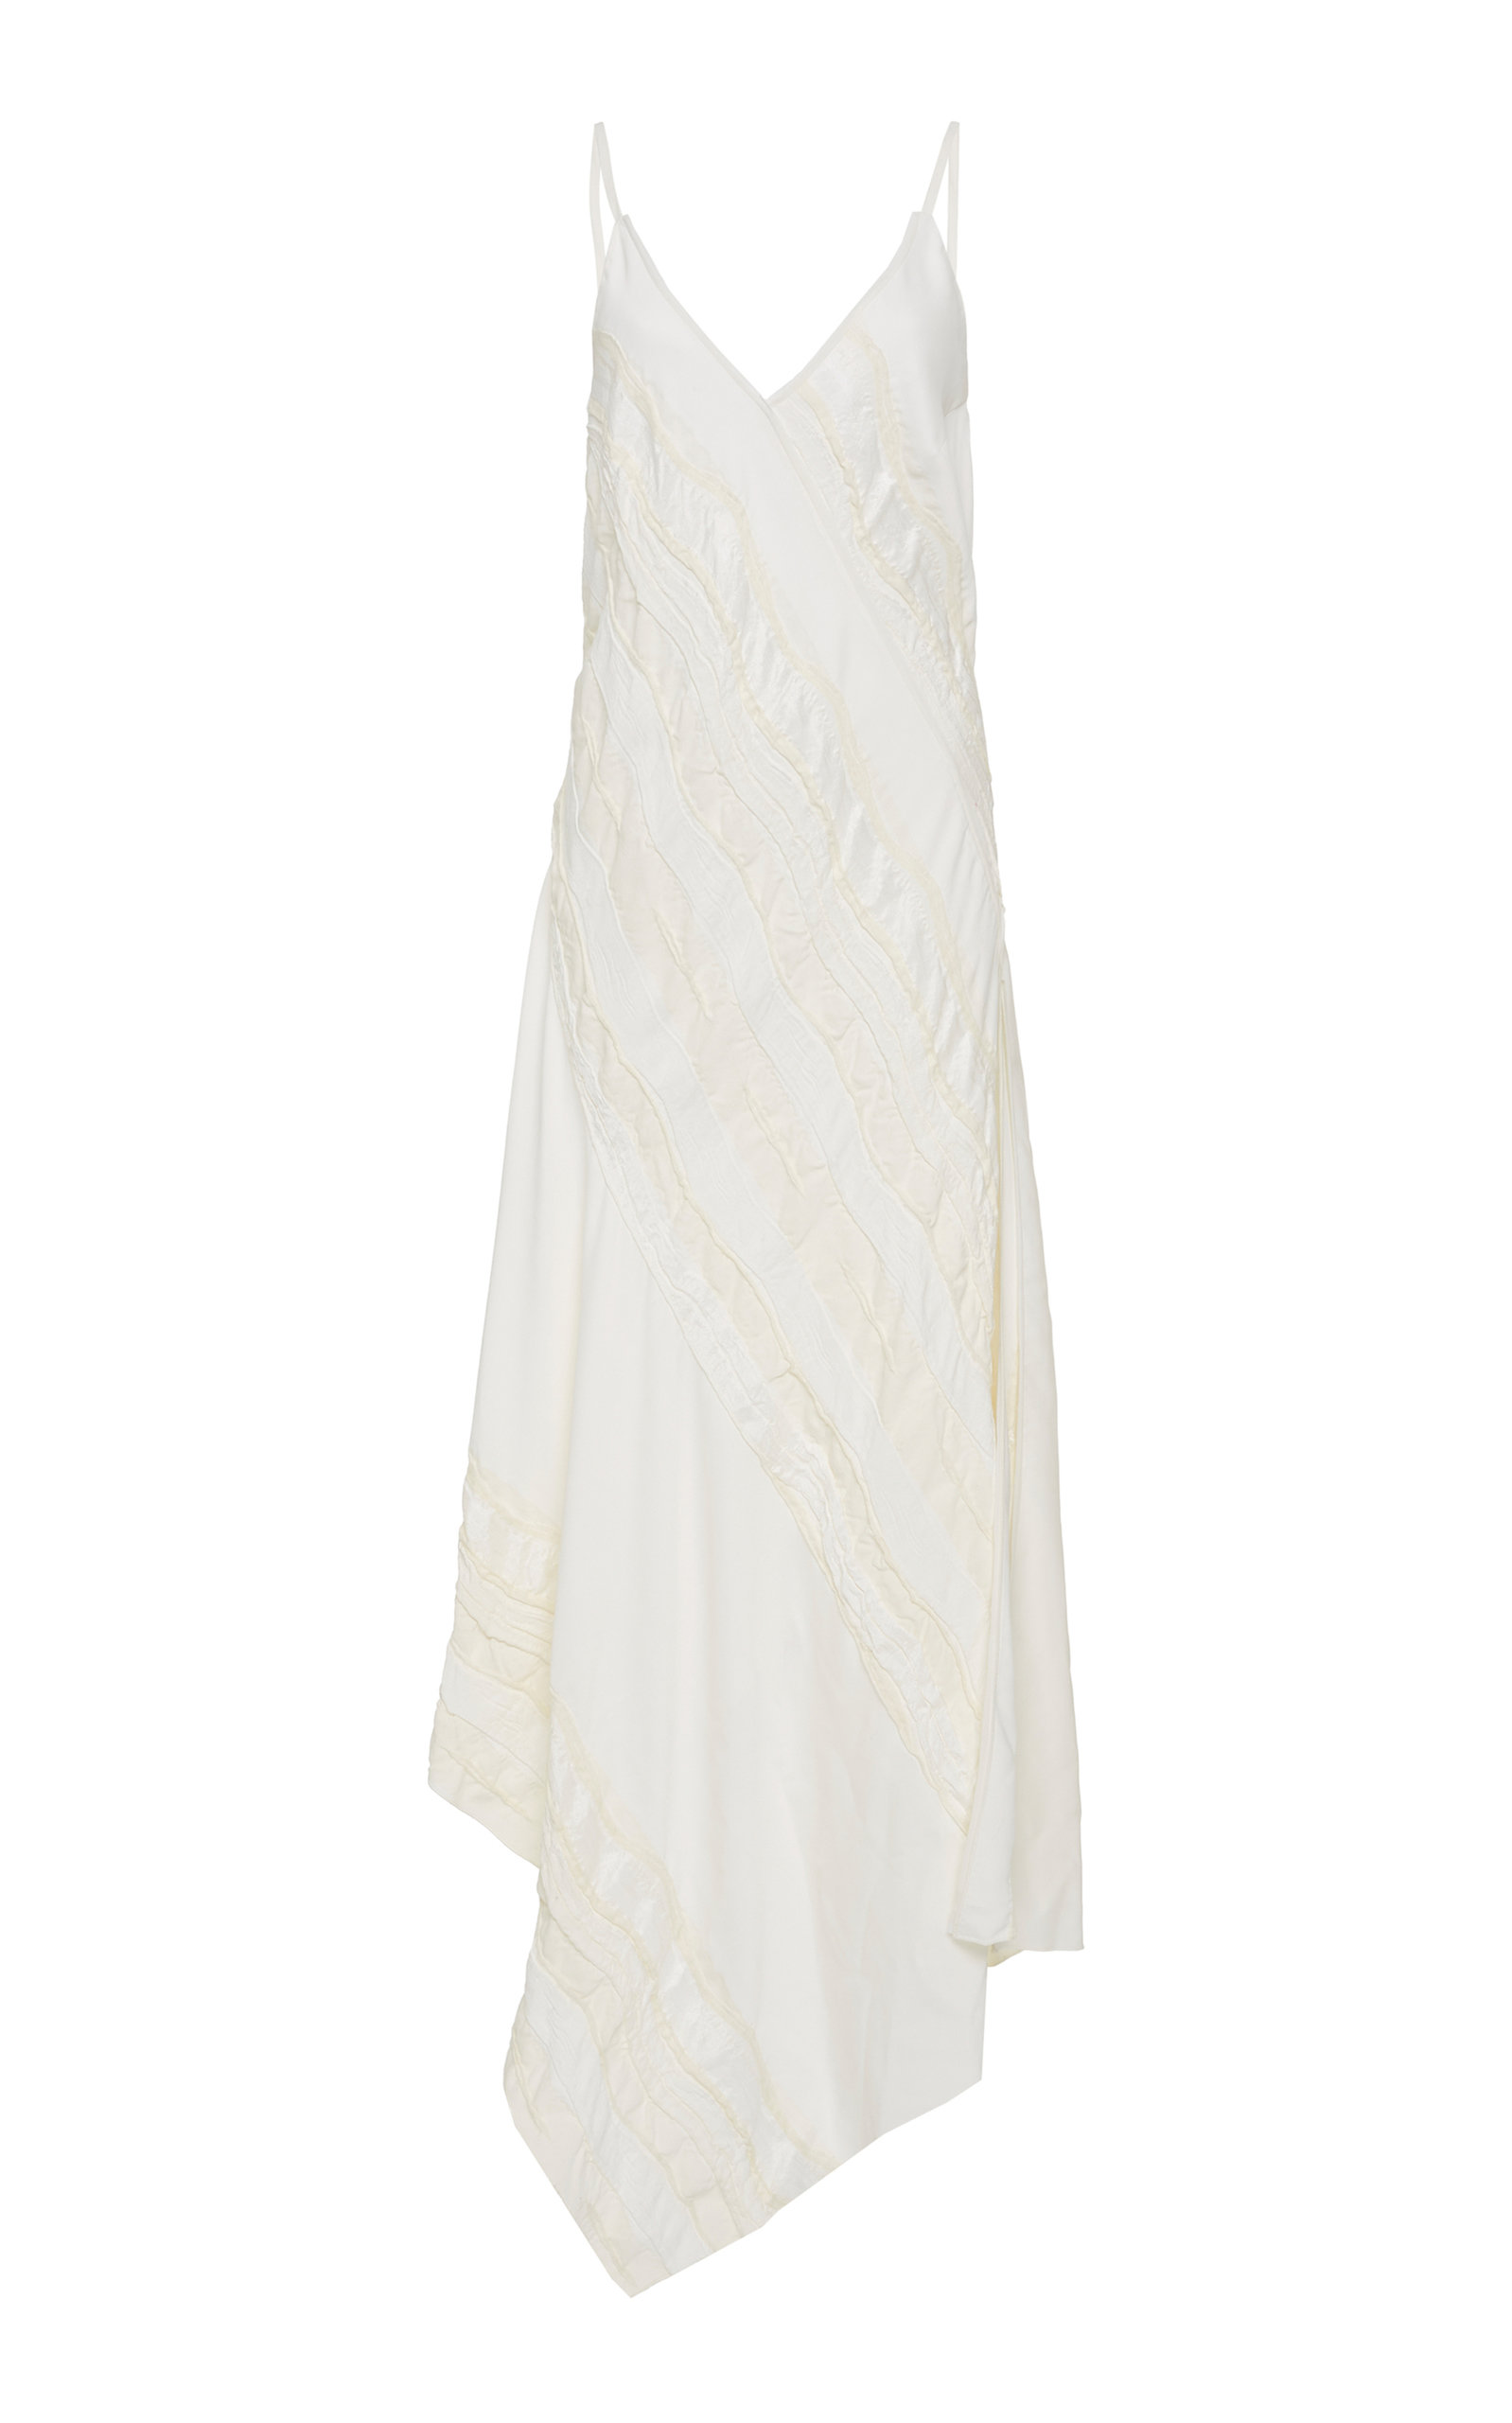 YEON M'O Exclusive Daphne Asymmetric Appliquéd Crepe Midi Dress in White